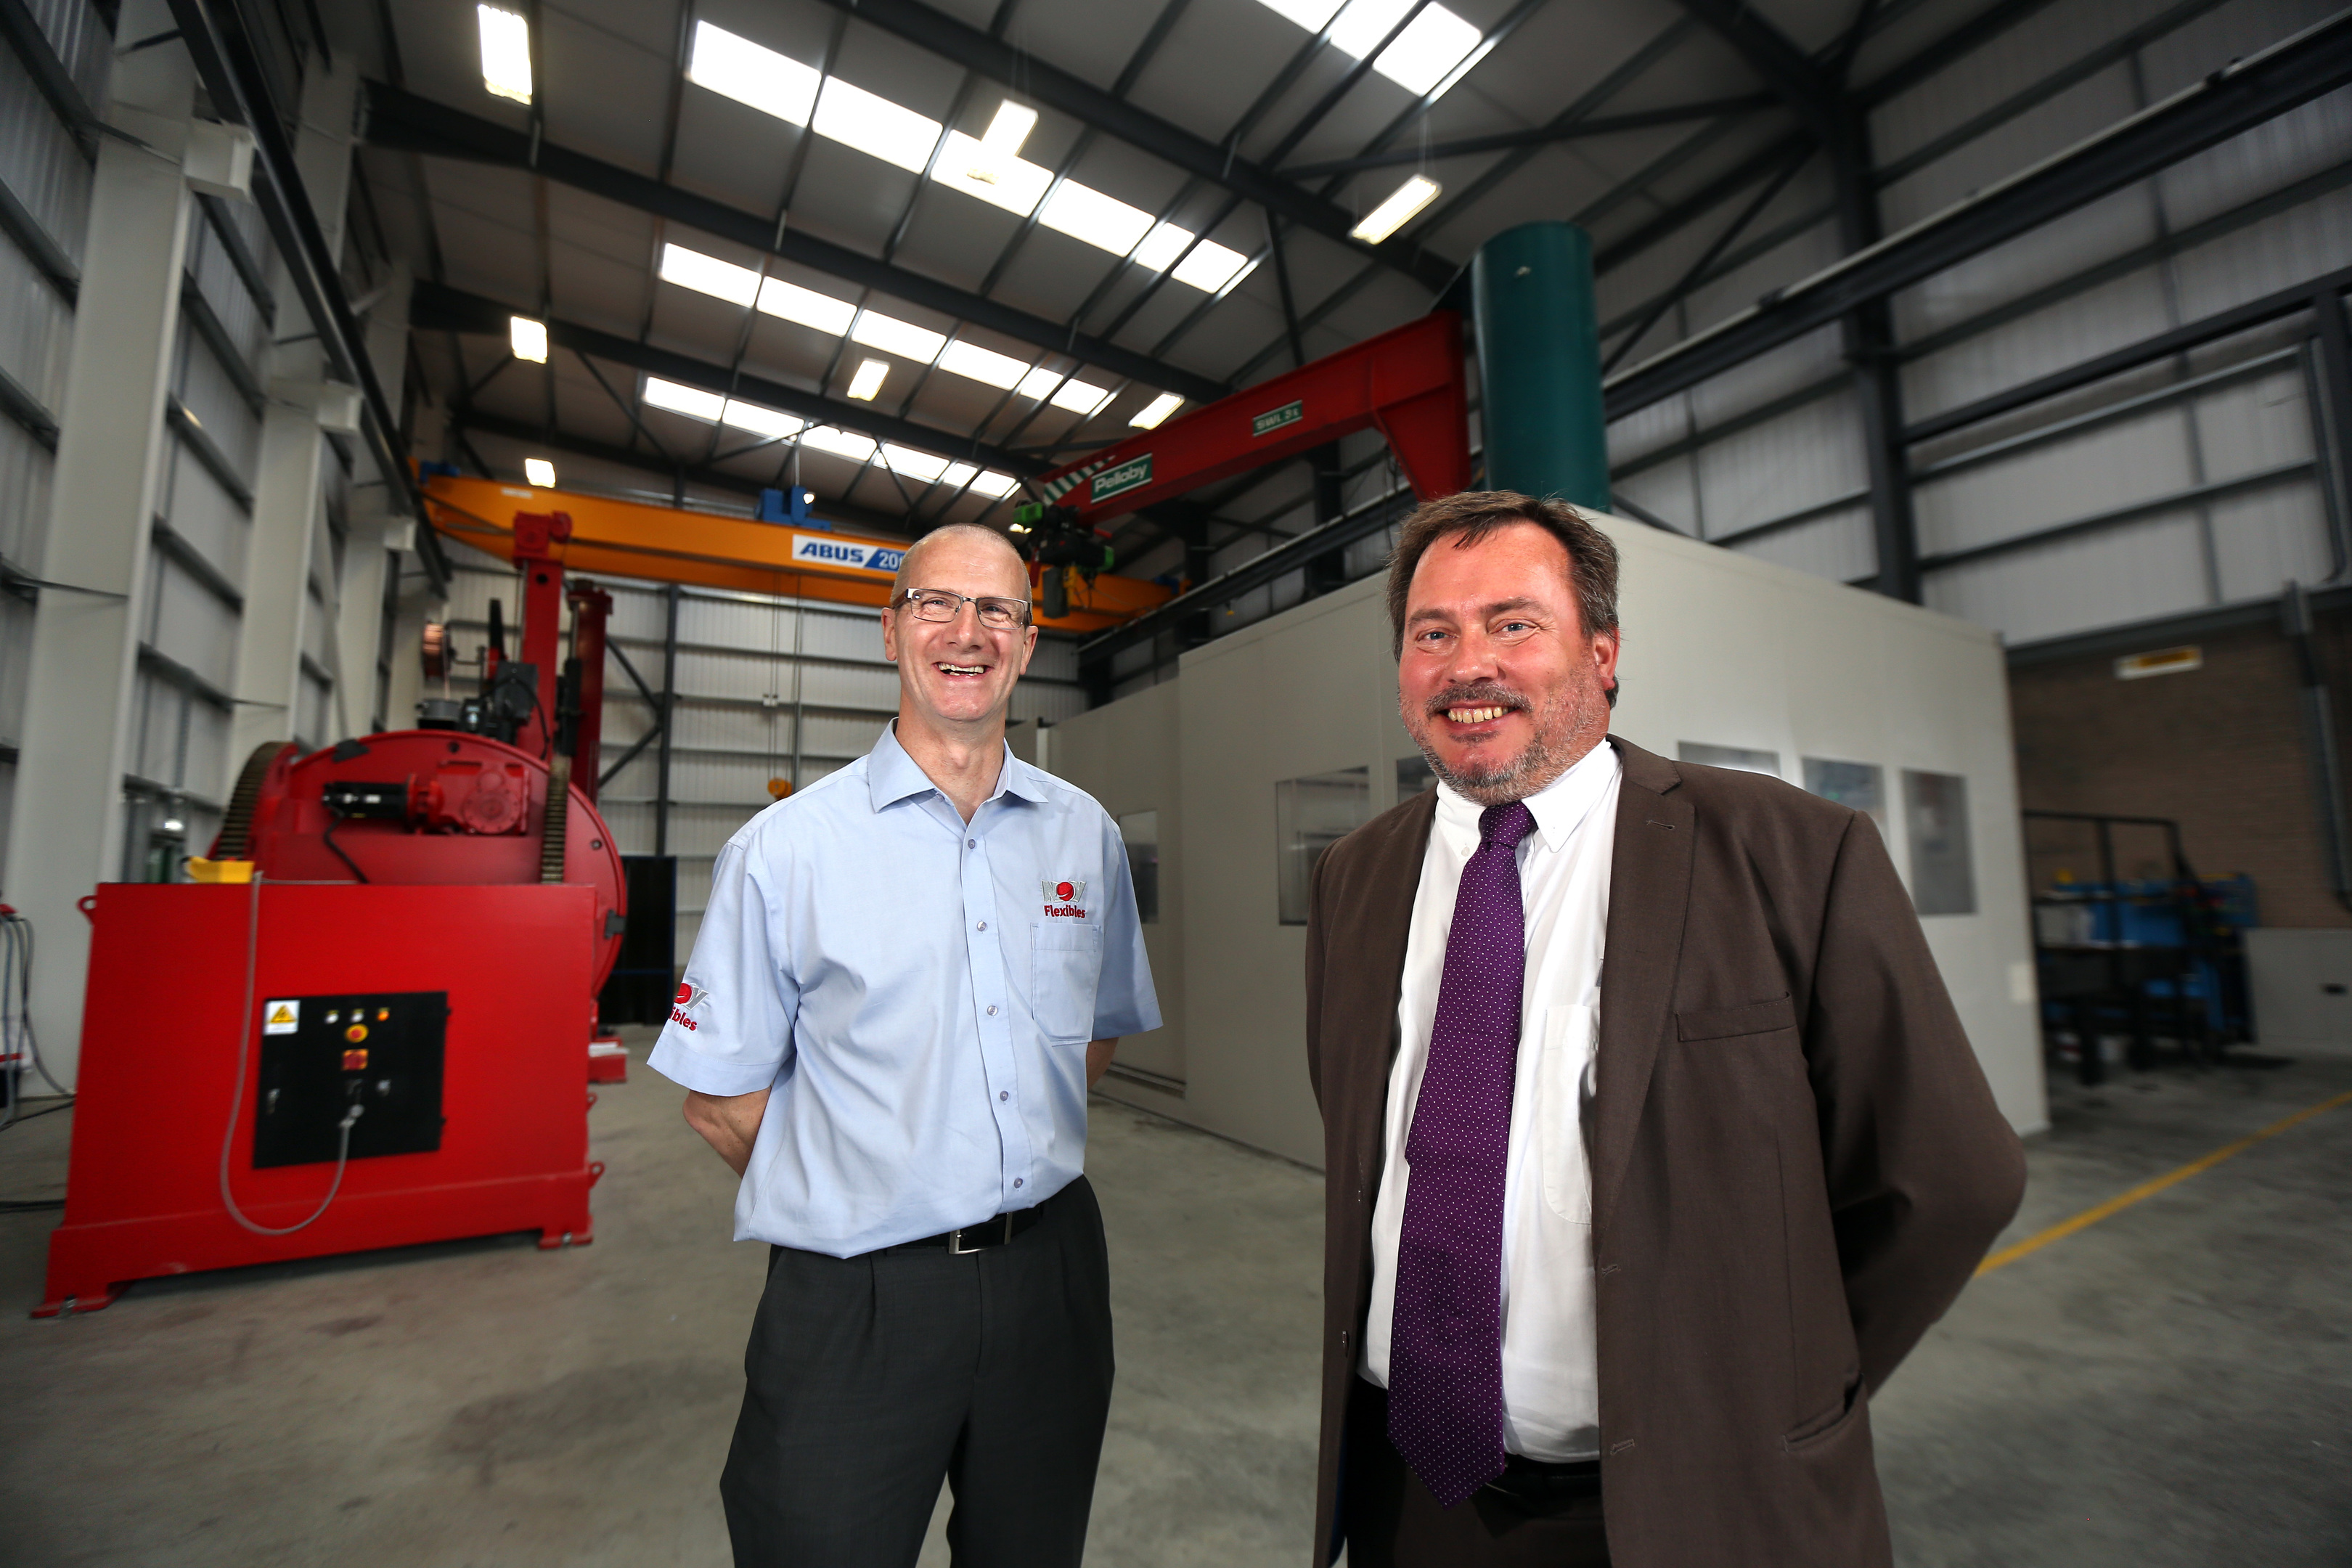 Extension project manager Alex Mitchell and supply chain director Steen Tornoe.